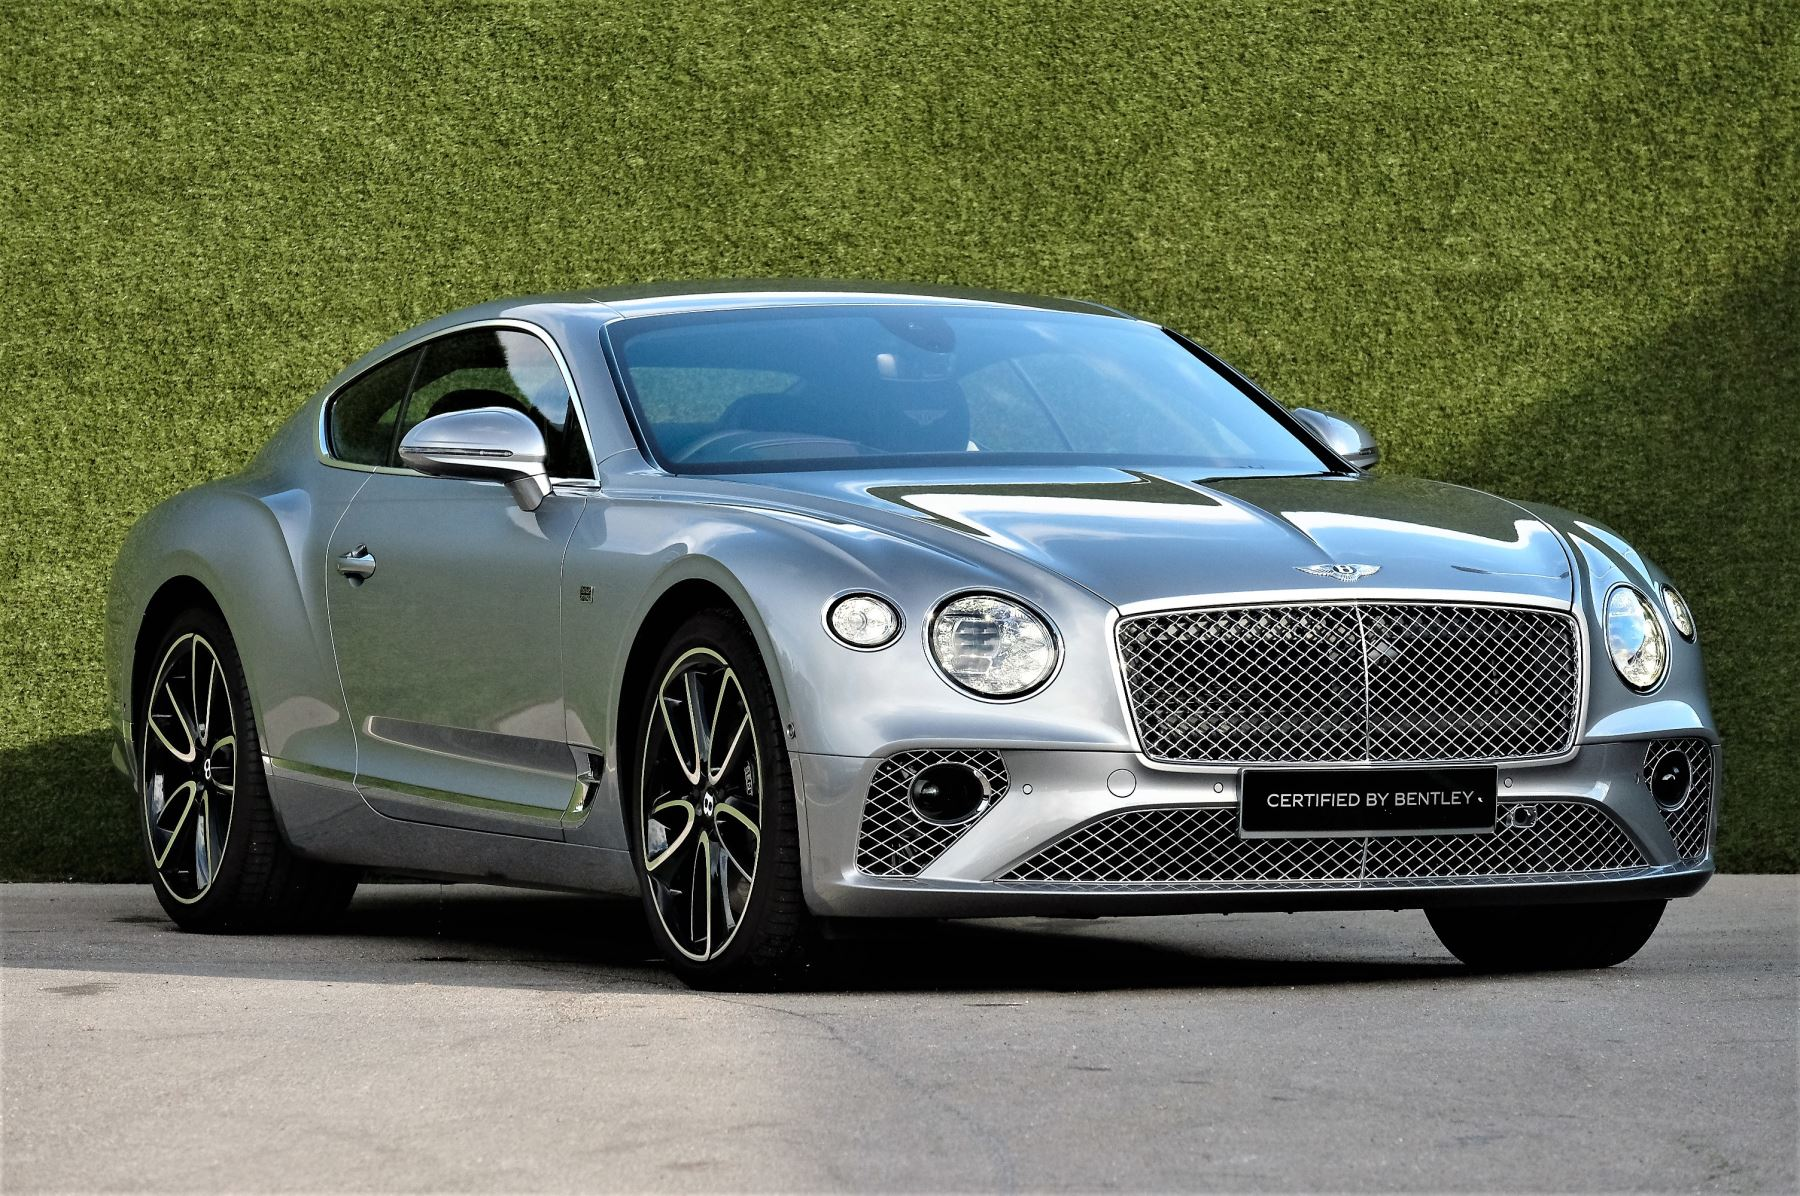 Bentley Continental GT 6.0 W12 First Edition 2dr Auto image 1